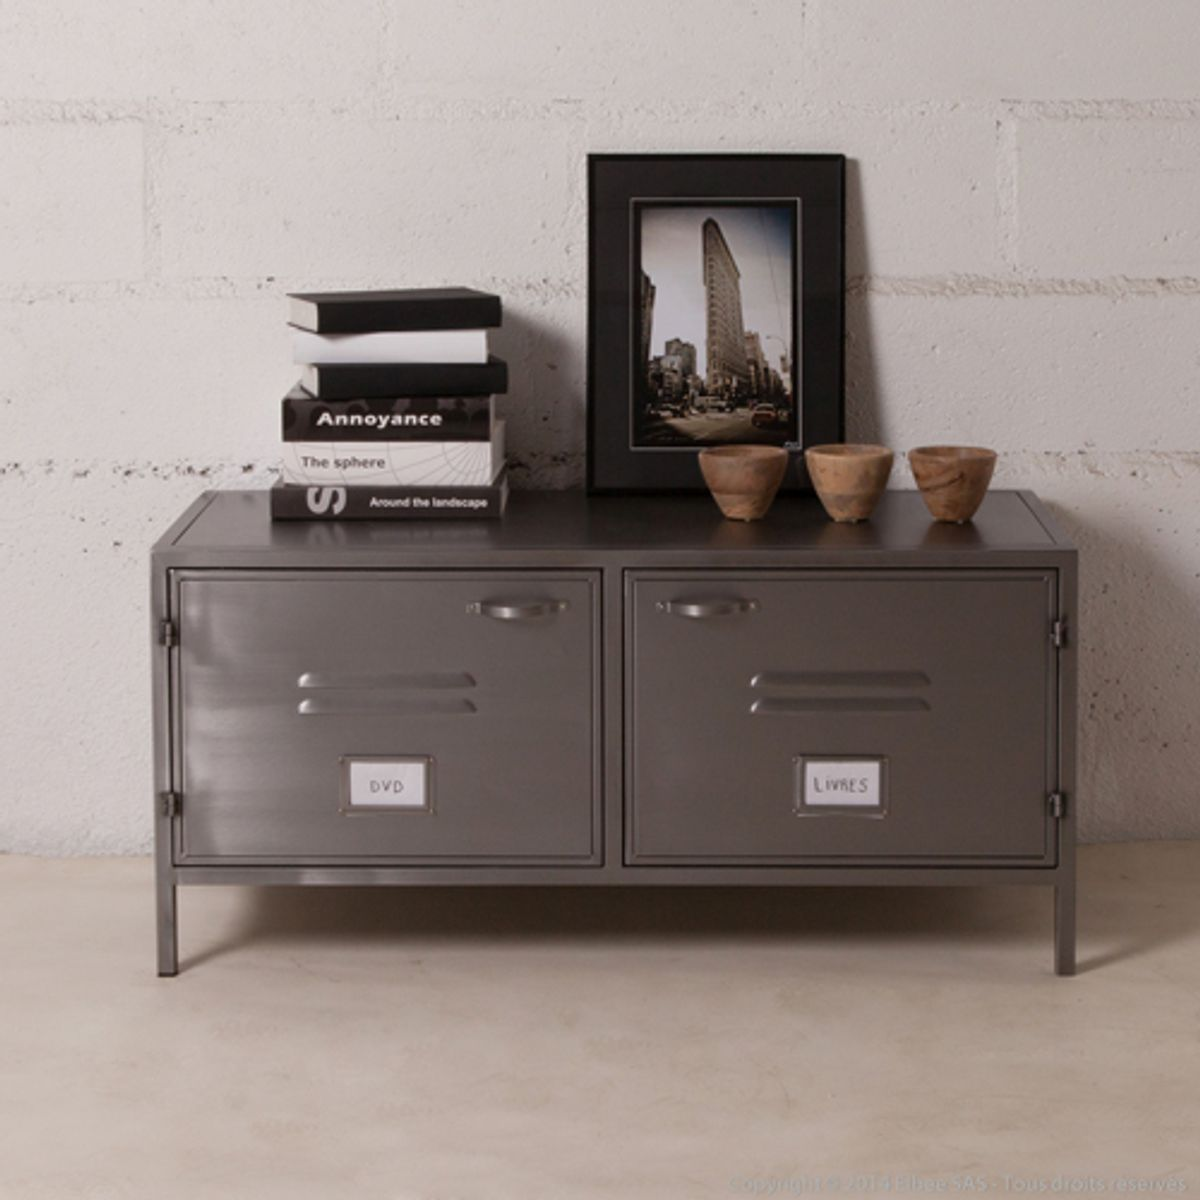 Casier Metallique Meuble Tv Buffet Bas Meuble Tv En Métal Gris 2 Portes Casiers Style